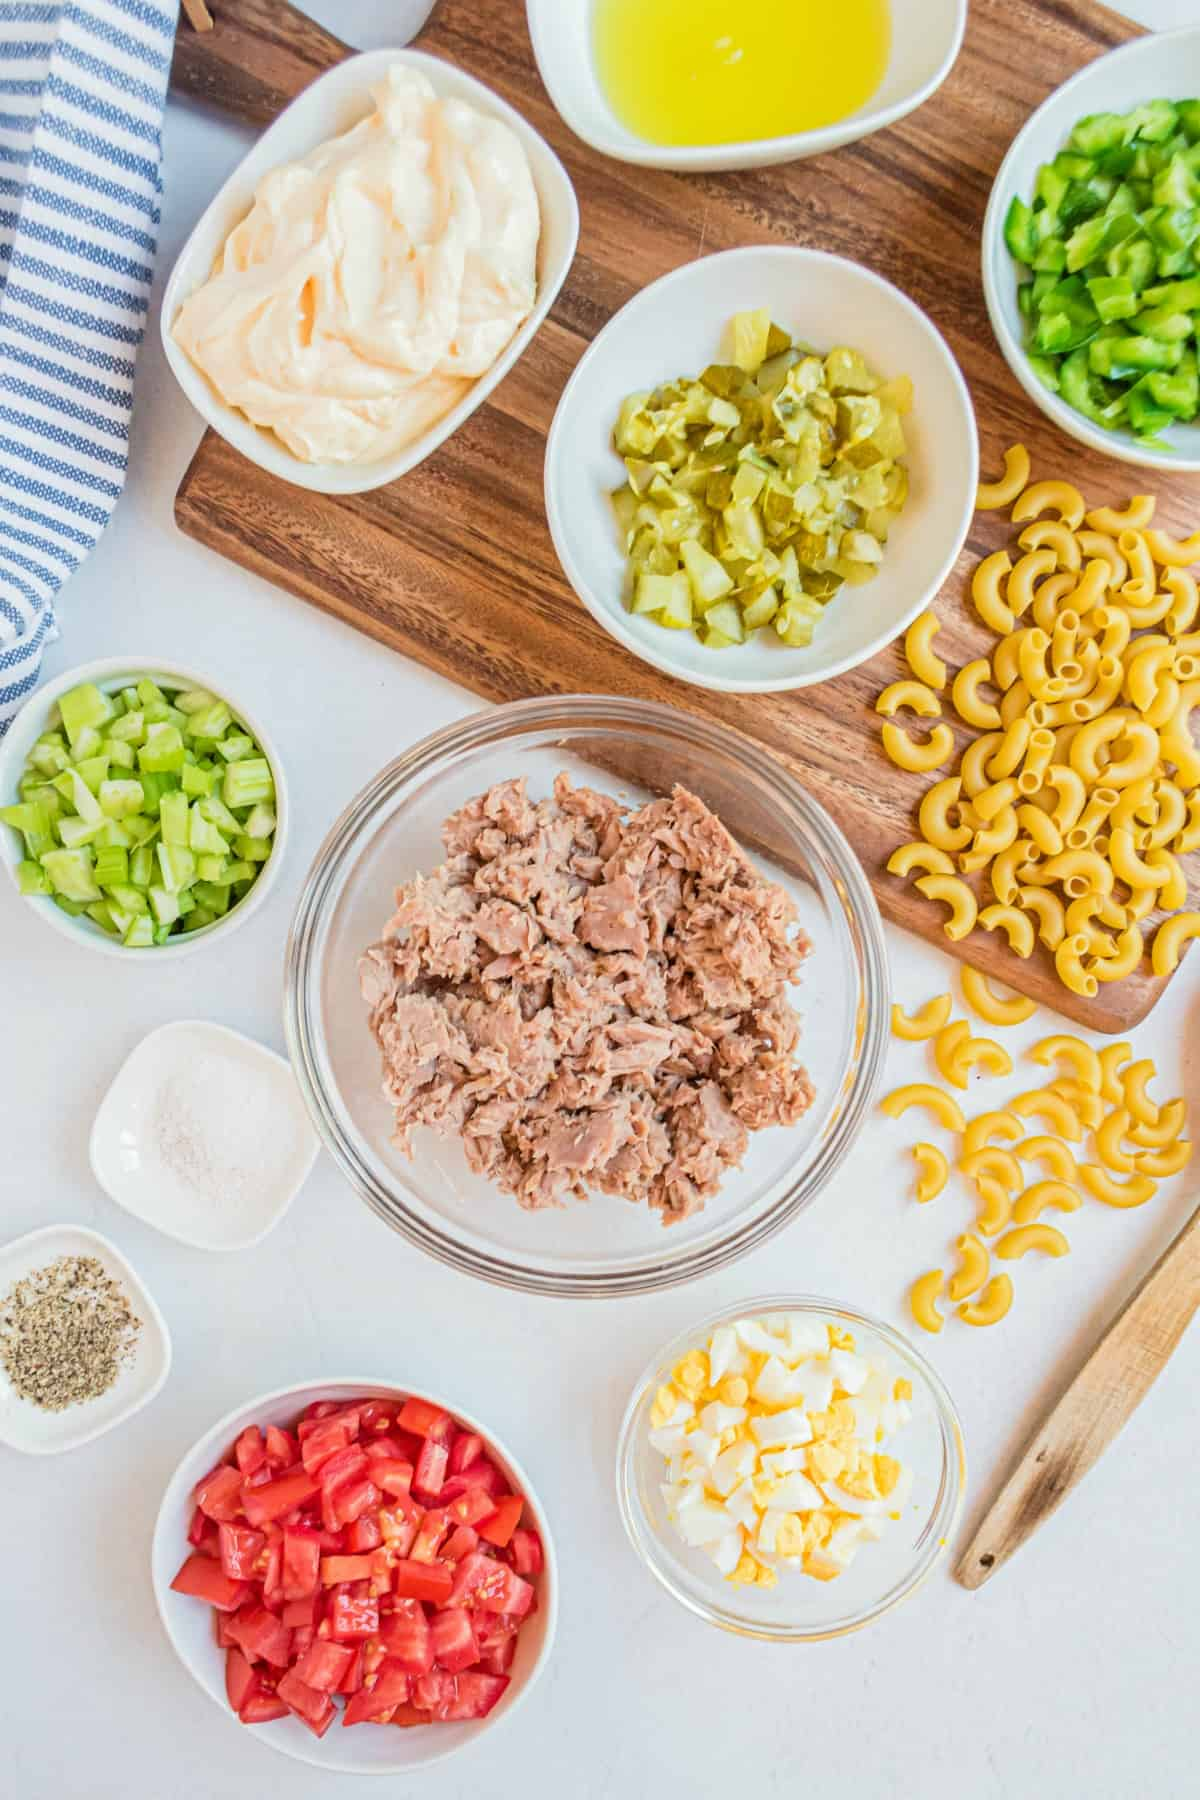 Ingredients for macaroni salad including tuna, vegetables, pickles, eggs and creamy dressing.